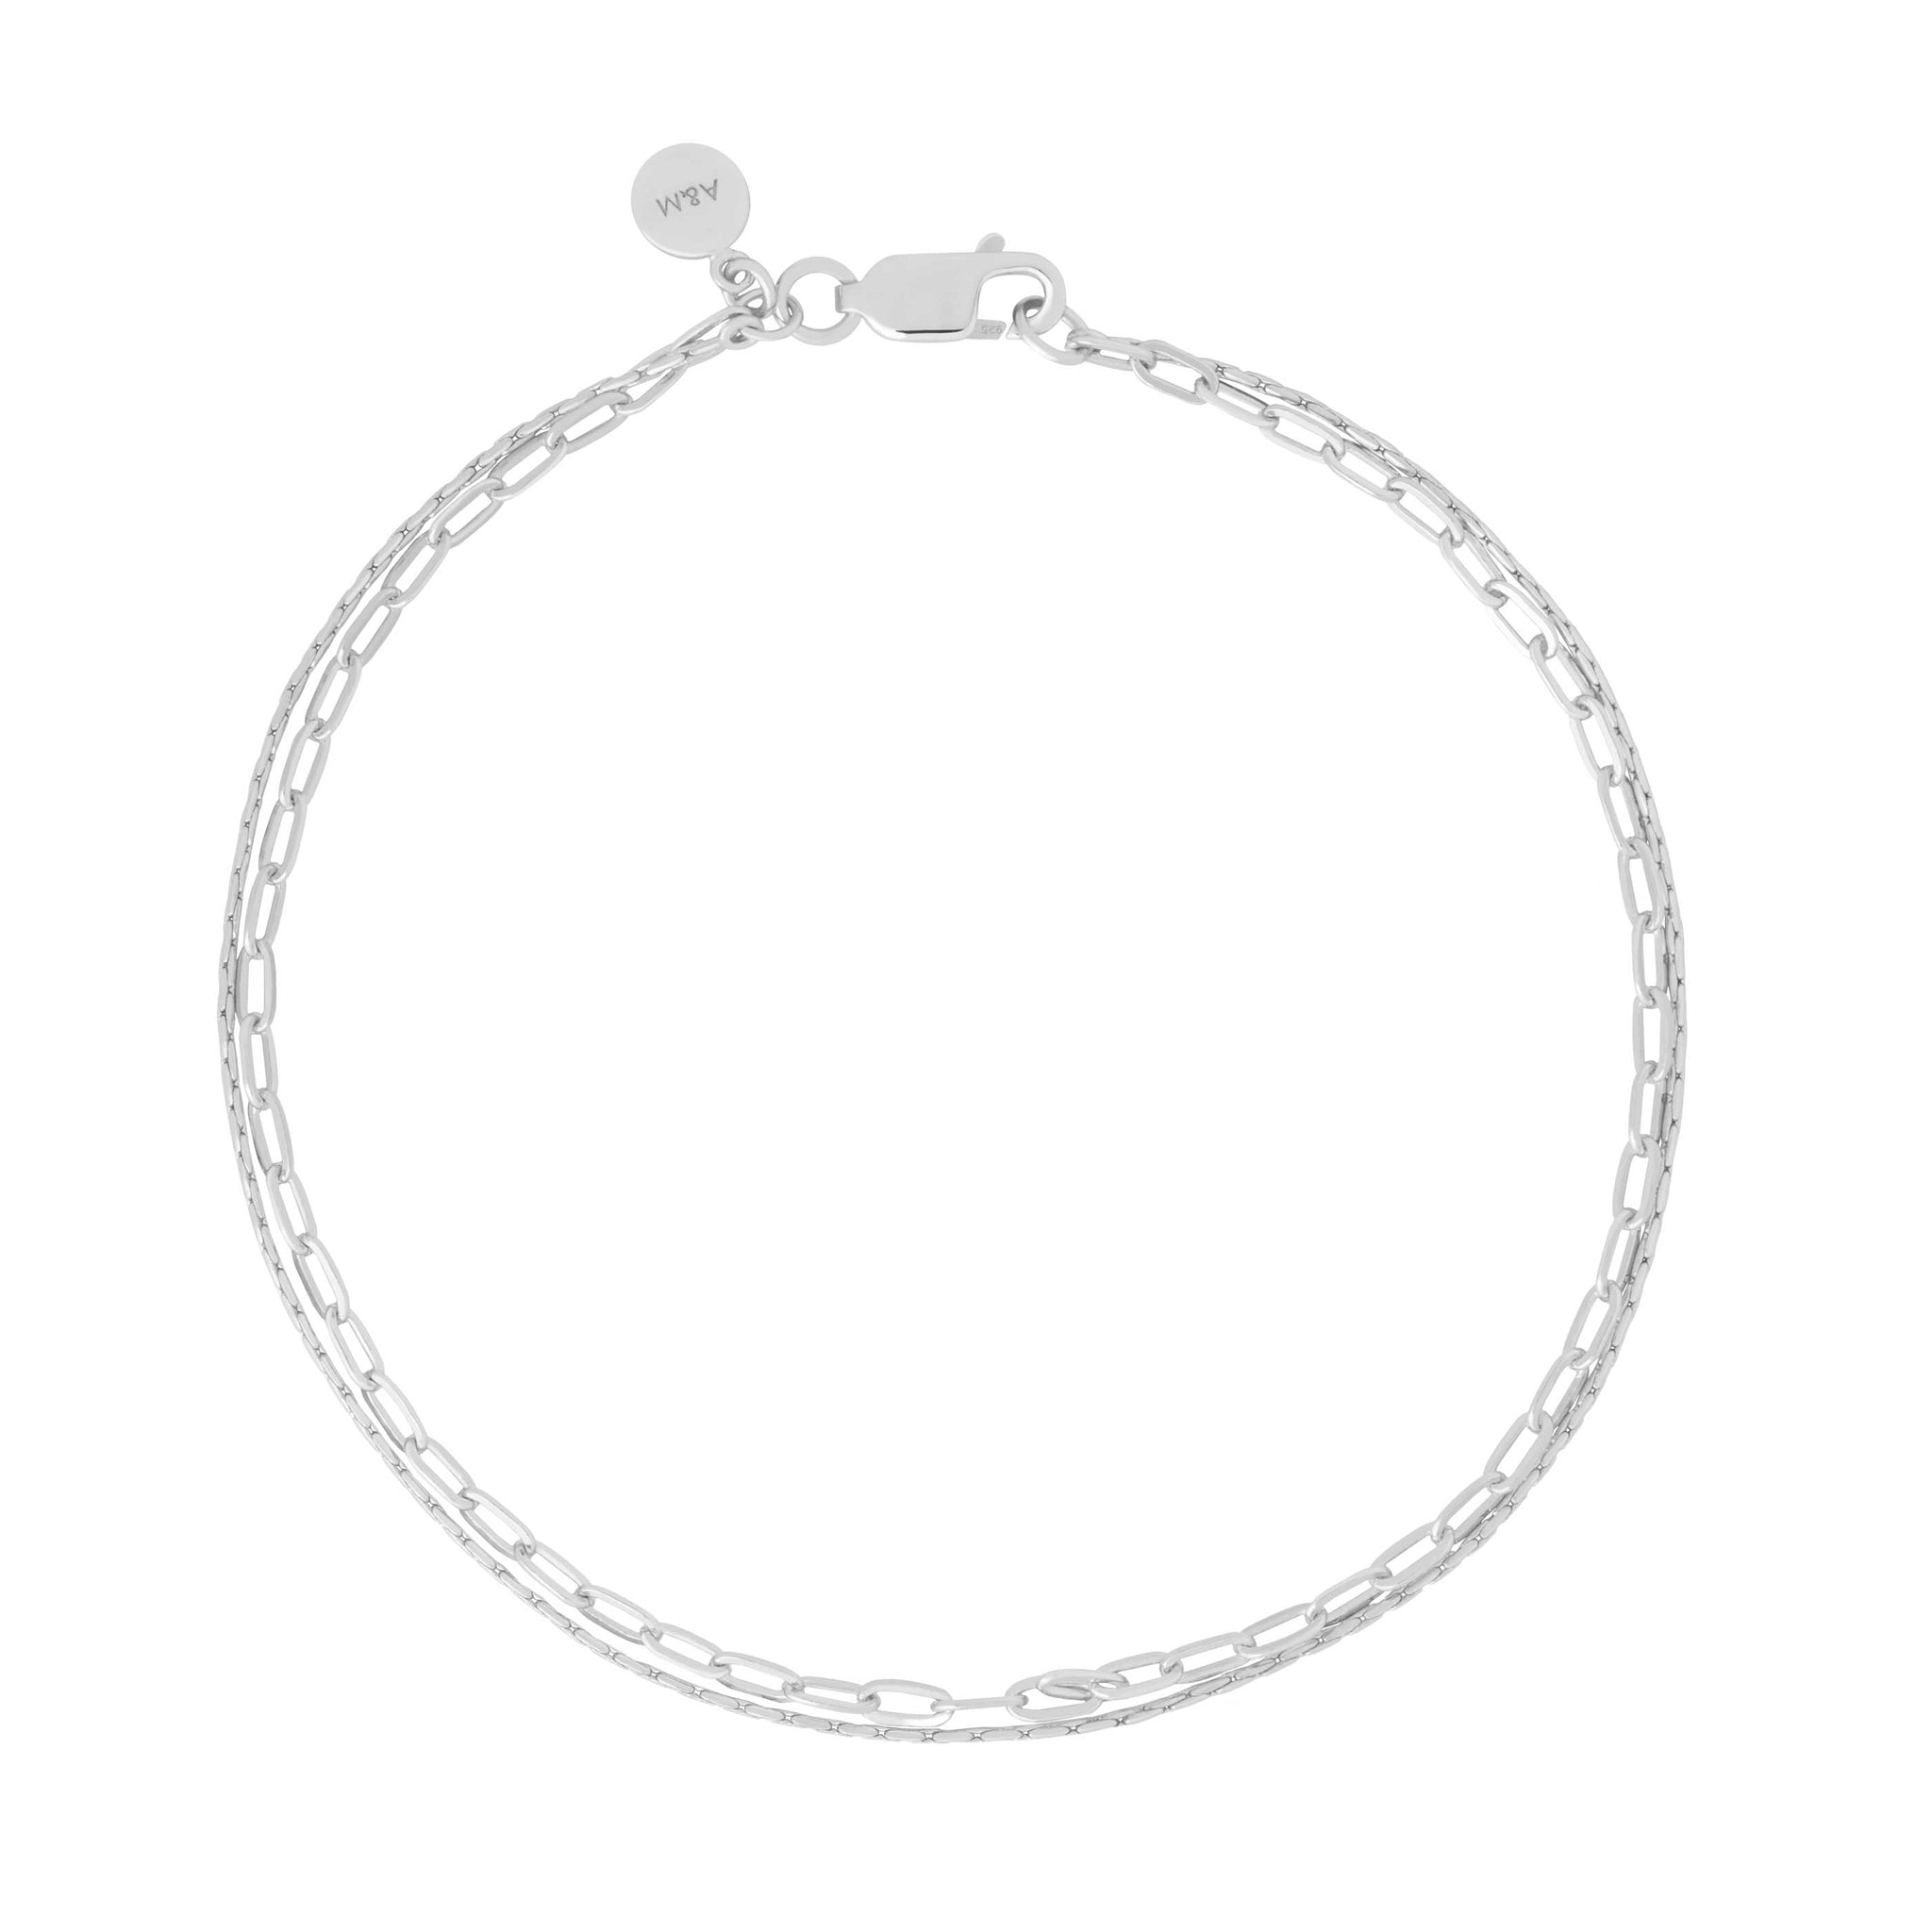 Double Chain Bracelet in Silver